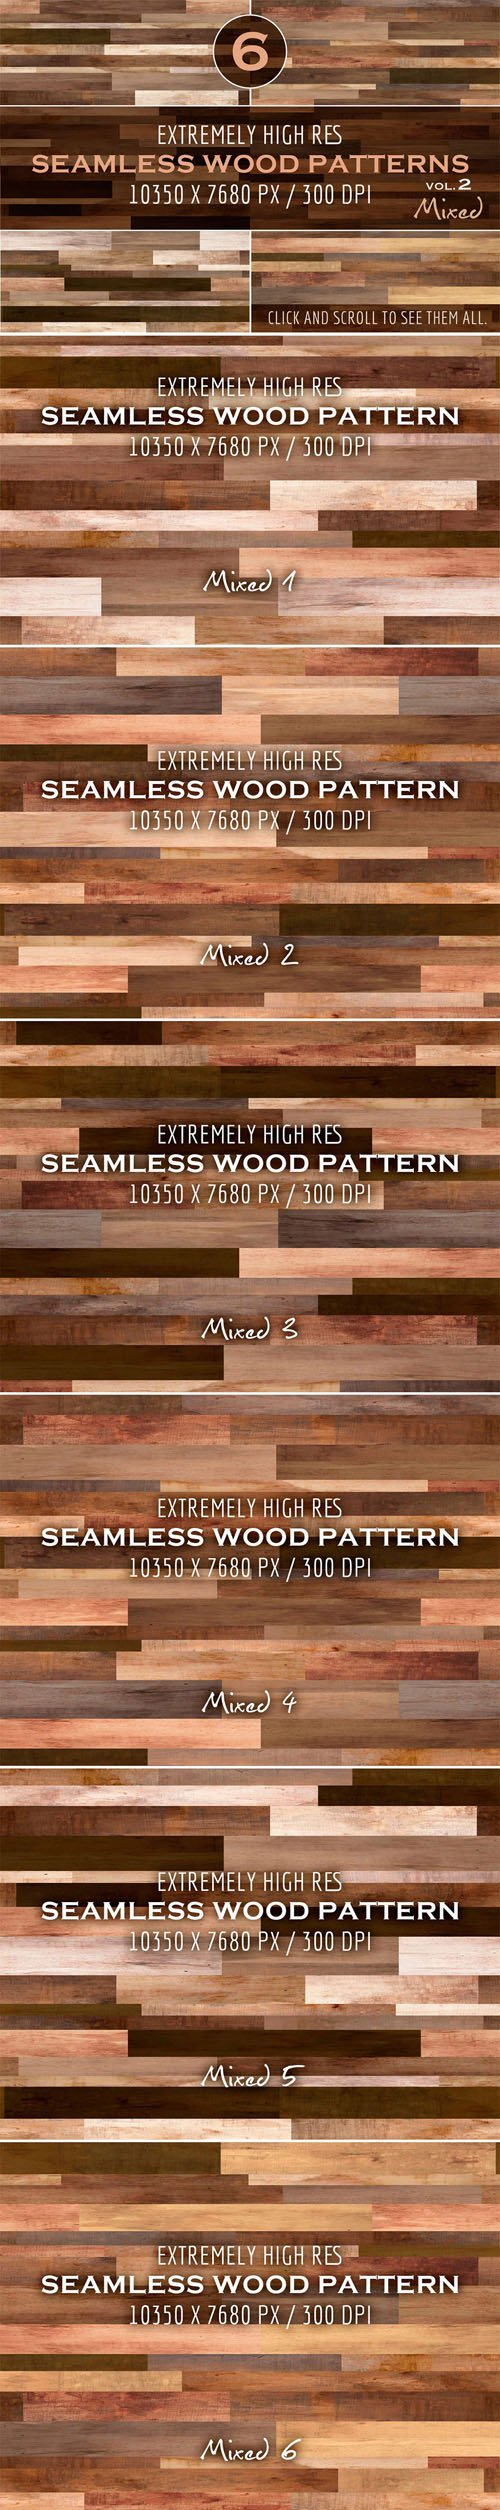 Creativemarket - Extremely HR seamless wood patterns 288147